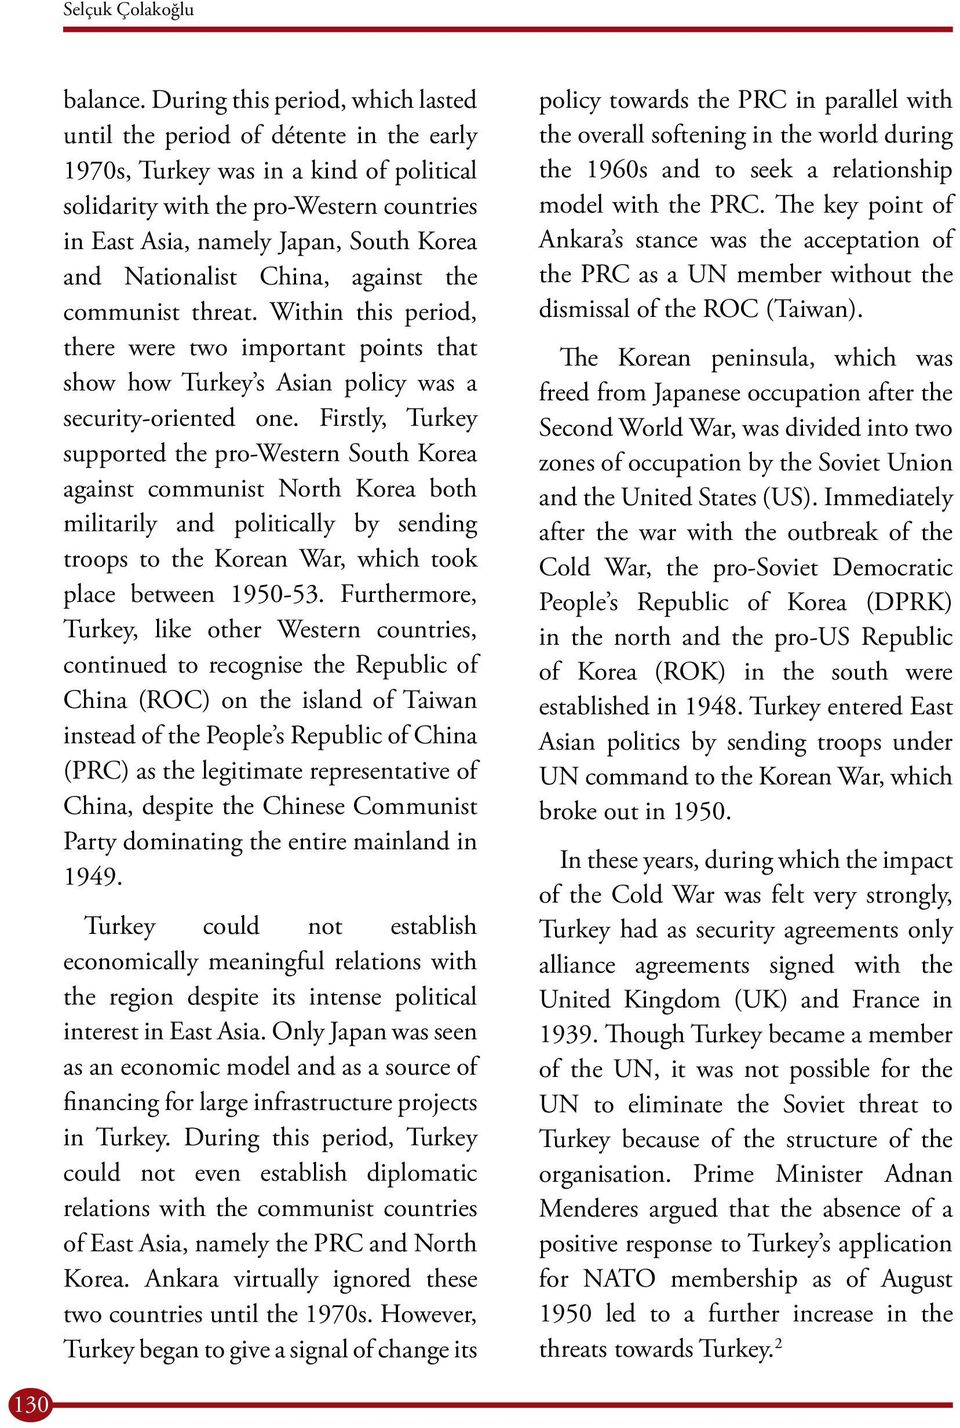 and Nationalist China, against the communist threat. Within this period, there were two important points that show how Turkey s Asian policy was a security-oriented one.